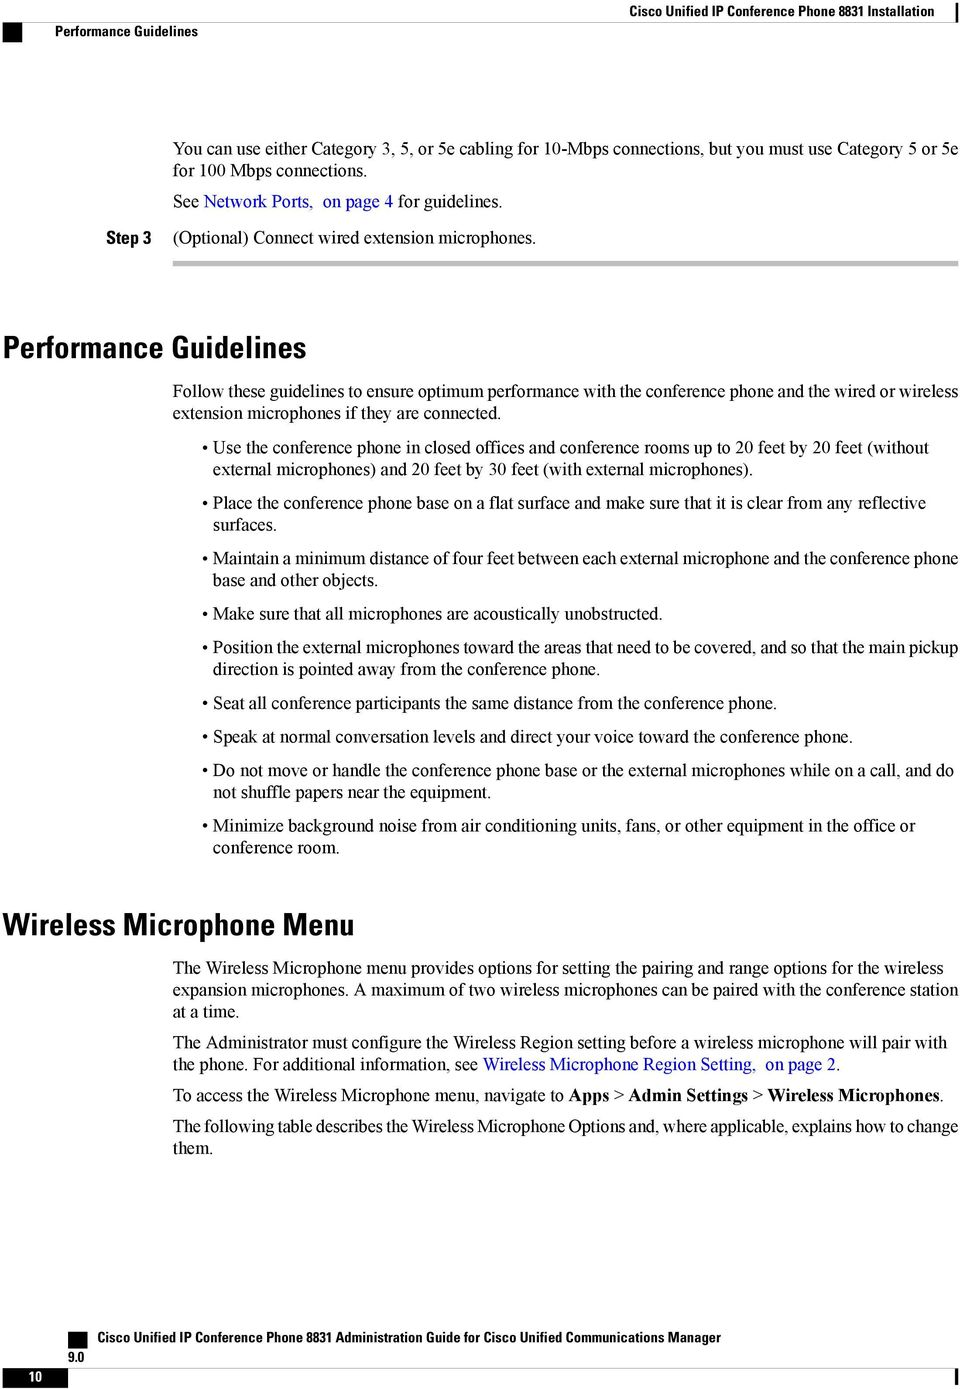 Performance Guidelines Follow these guidelines to ensure optimum performance with the conference phone and the wired or wireless extension microphones if they are connected.